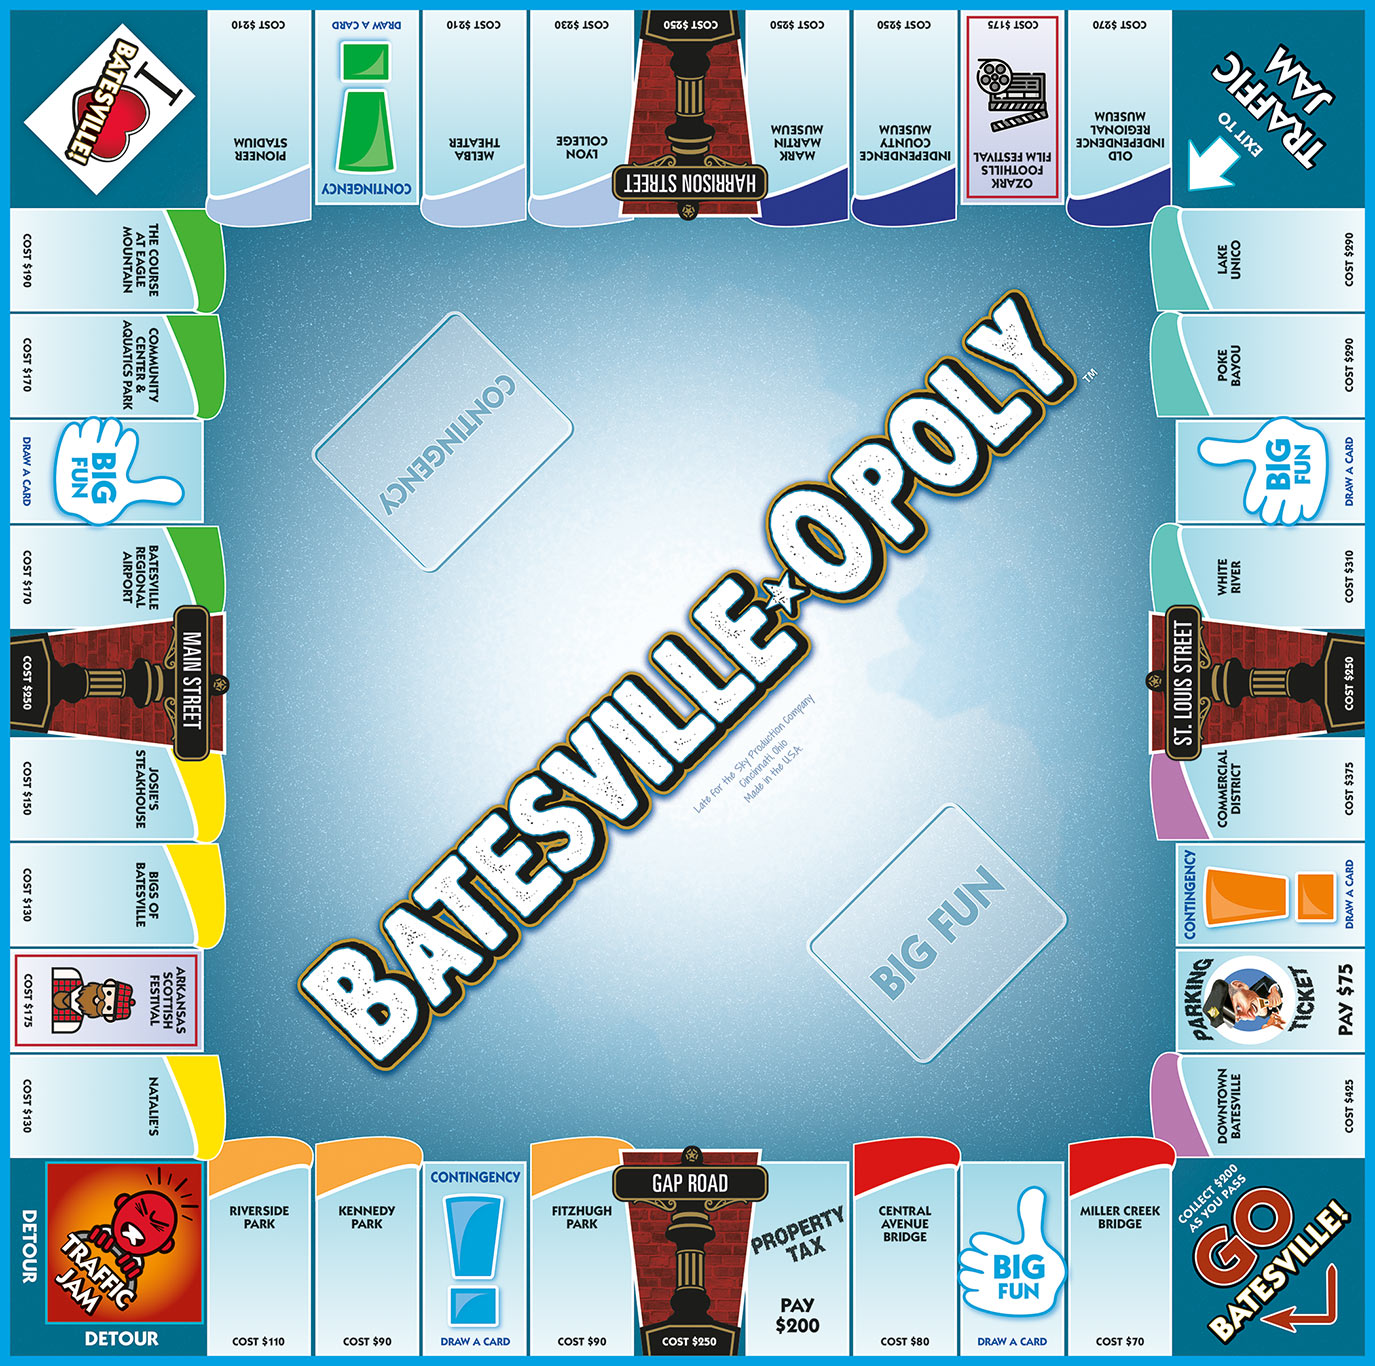 BATESVILLE-OPOLY Board Game